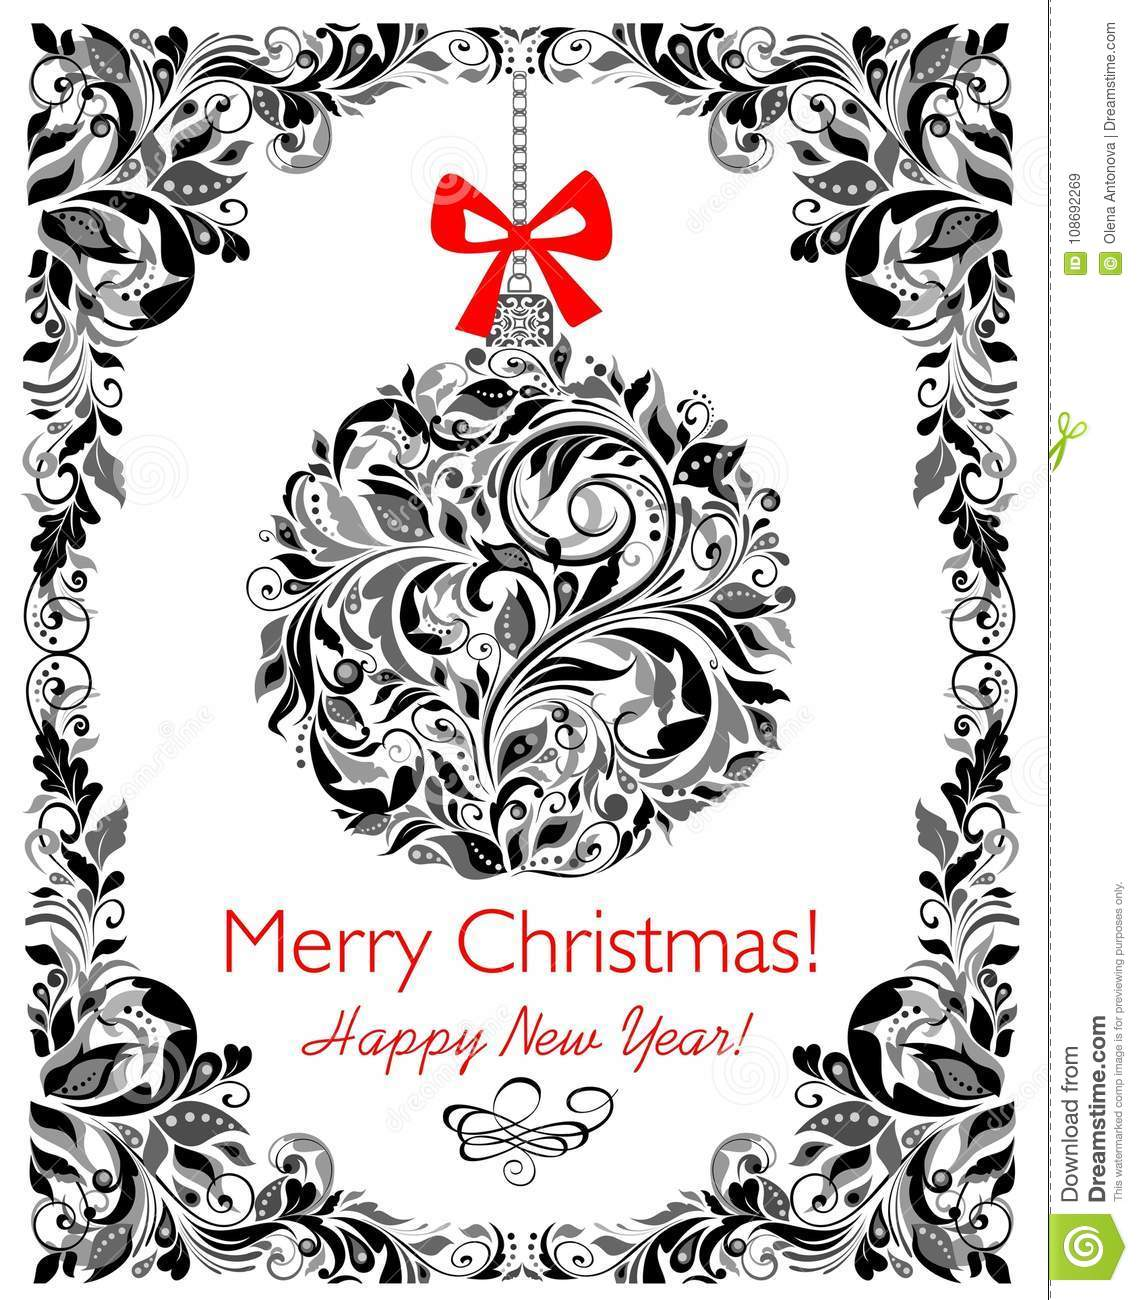 Decorative Floral Black And White Greeting Christmas Card With ...